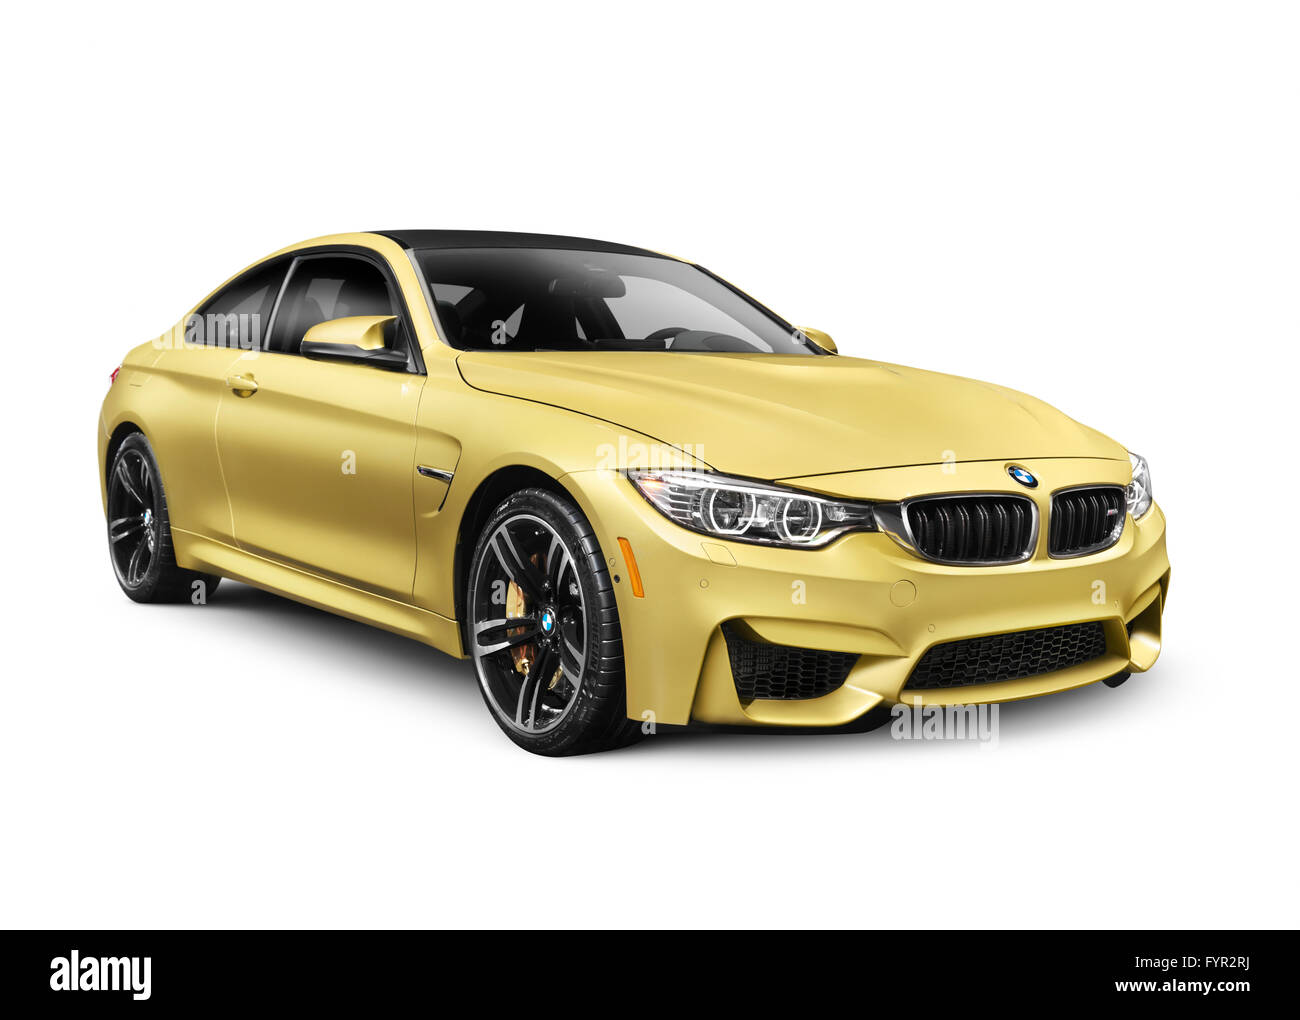 Gold 2015 BMW M4 Coupe performance car - Stock Image